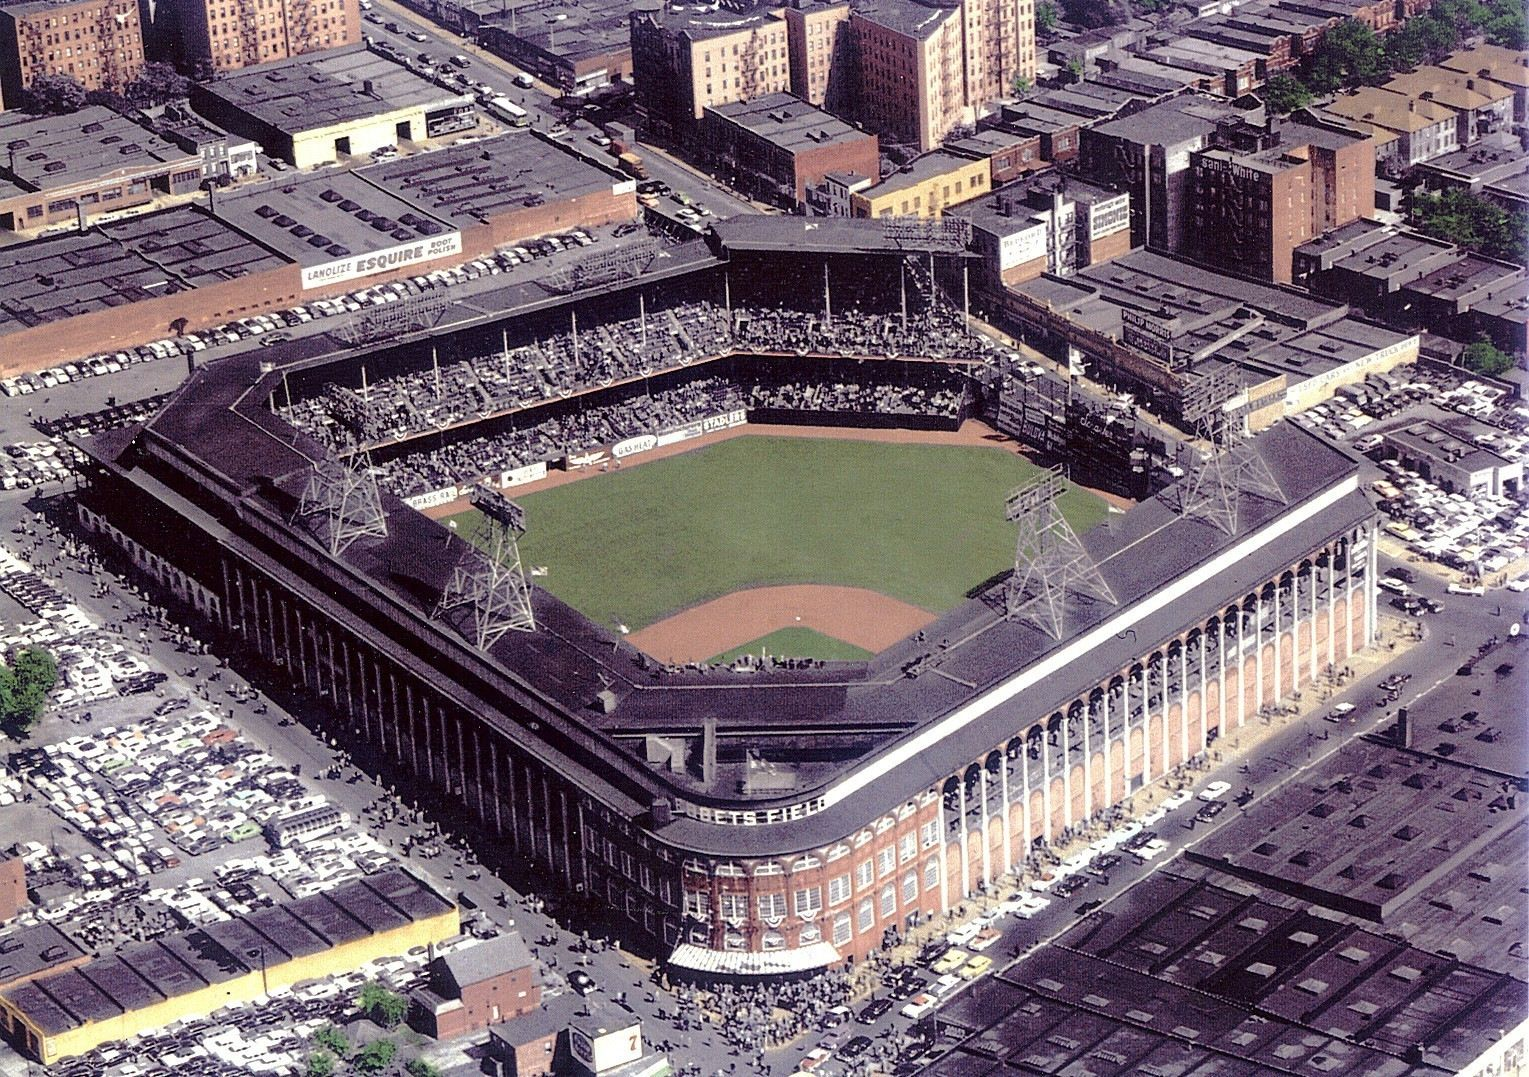 Beautiful Ebbets Field The Better Of Two Venues That The Dodgers Have Historically Called Home Baseball Stadiums Pictures Mlb Stadiums Baseball Park